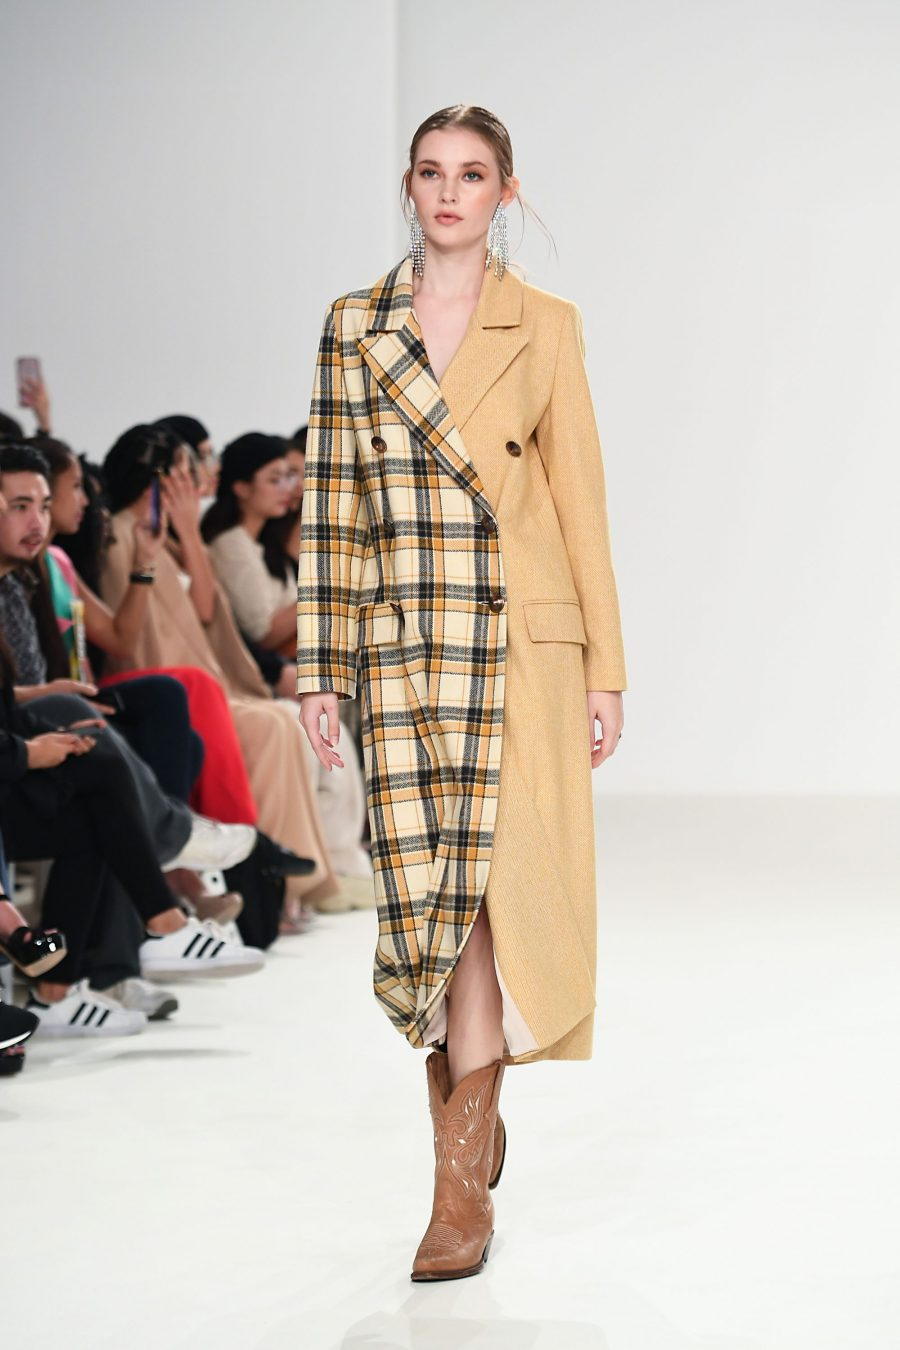 Brooke Coat - Beige by Jessica K on curated-crowd.com